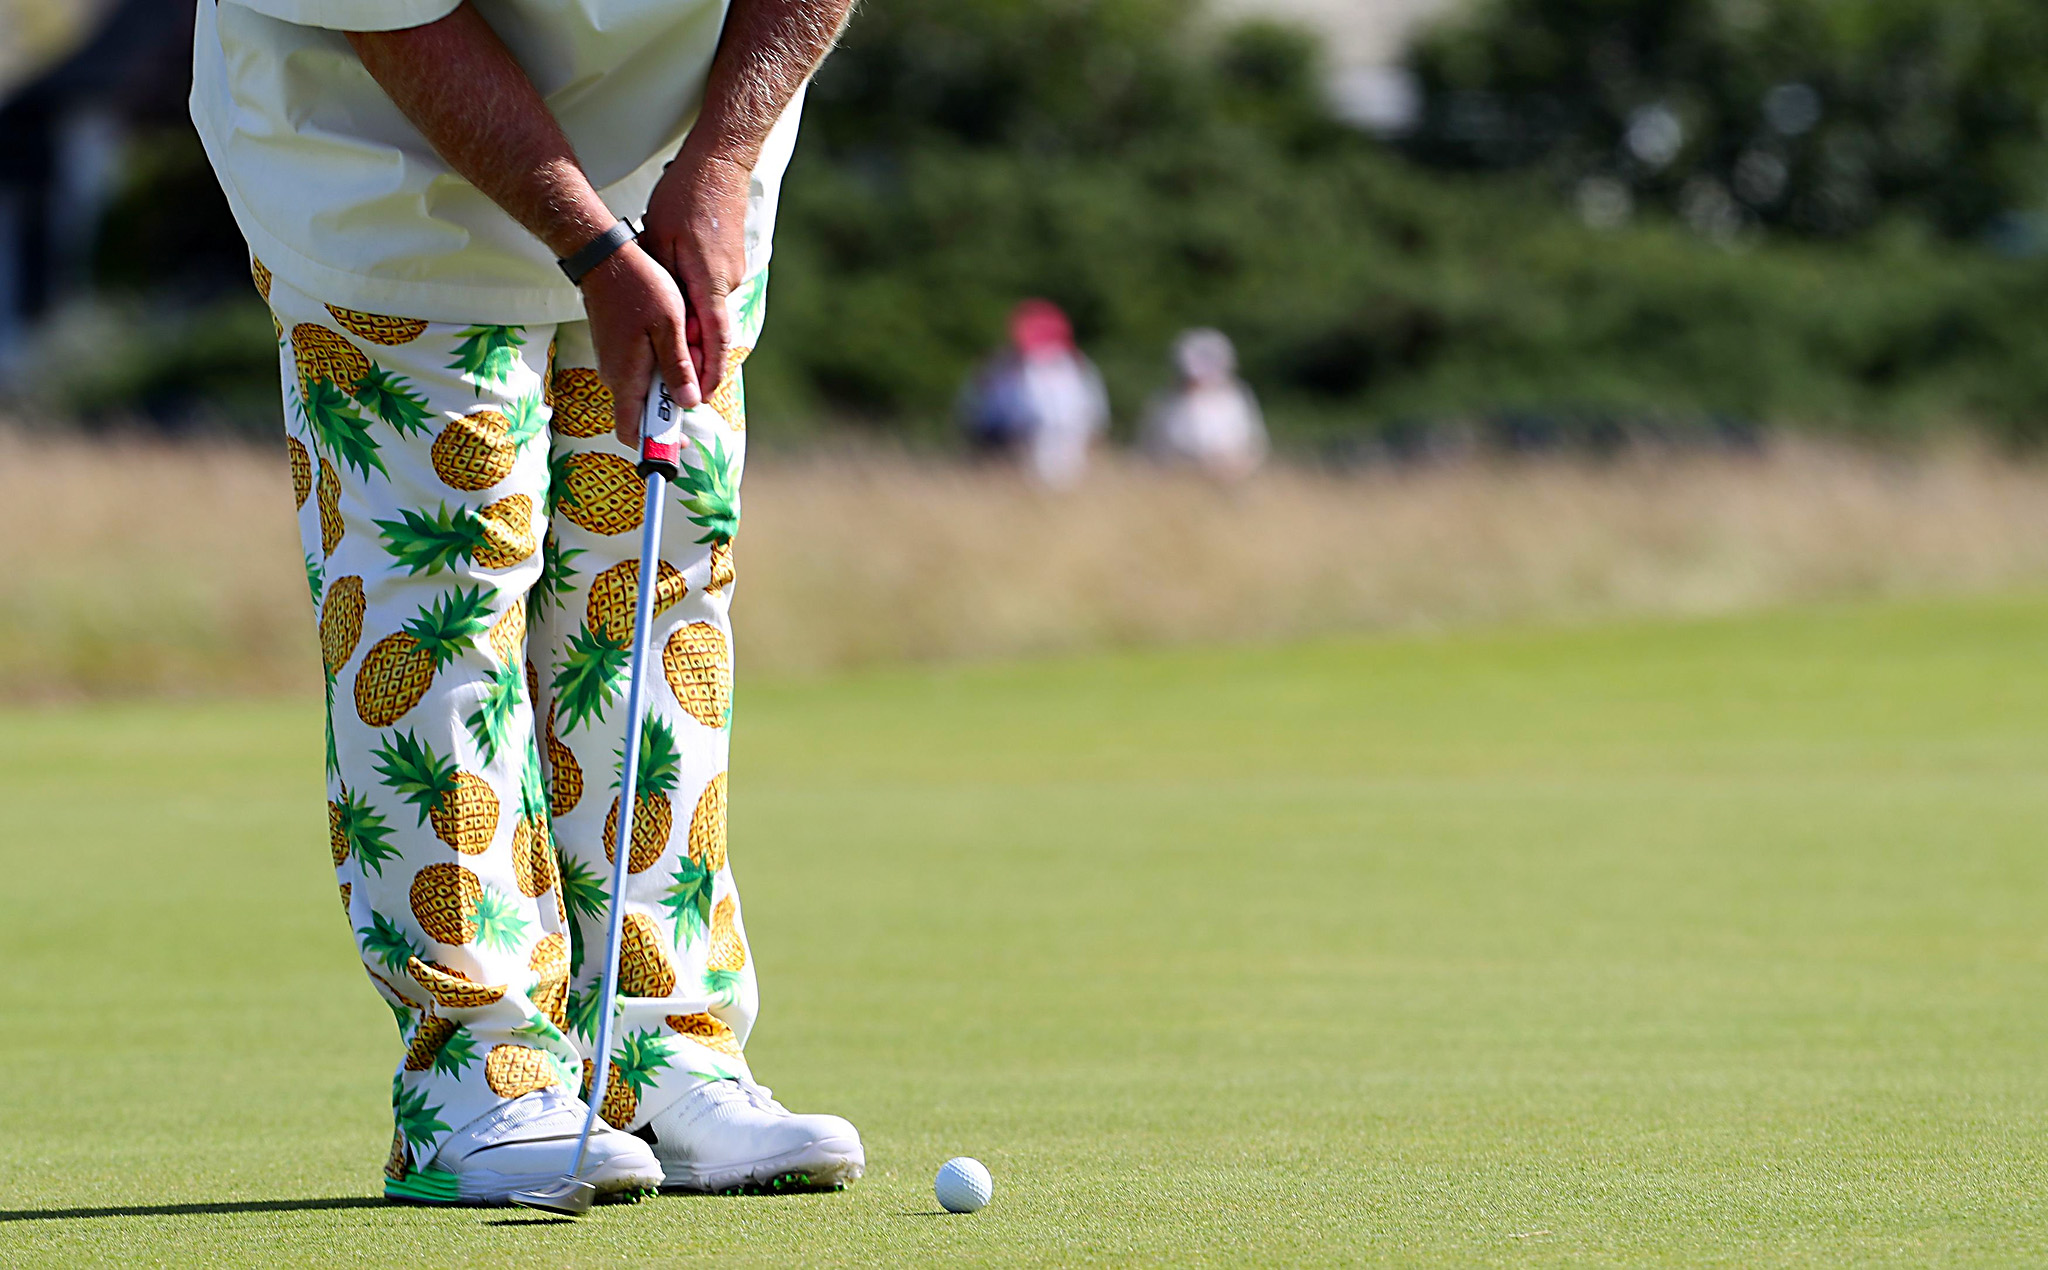 A view of USA's John Daly's trousers during day one of The Open Championship 2016 at Royal Troon Golf Club, South Ayrshire. PRESS ASSOCIATION Photo. Picture date: Thursday July 14, 2016. See PA story GOLF Open. Photo credit should read: Peter Byrne/PA Wire. RESTRICTIONS: Editorial use only. No commercial use. Still image use only. The Open Championship logo and clear link to The Open website (TheOpen.com) to be included on website publishing. Call +44 (0)1158 447447 for further information.